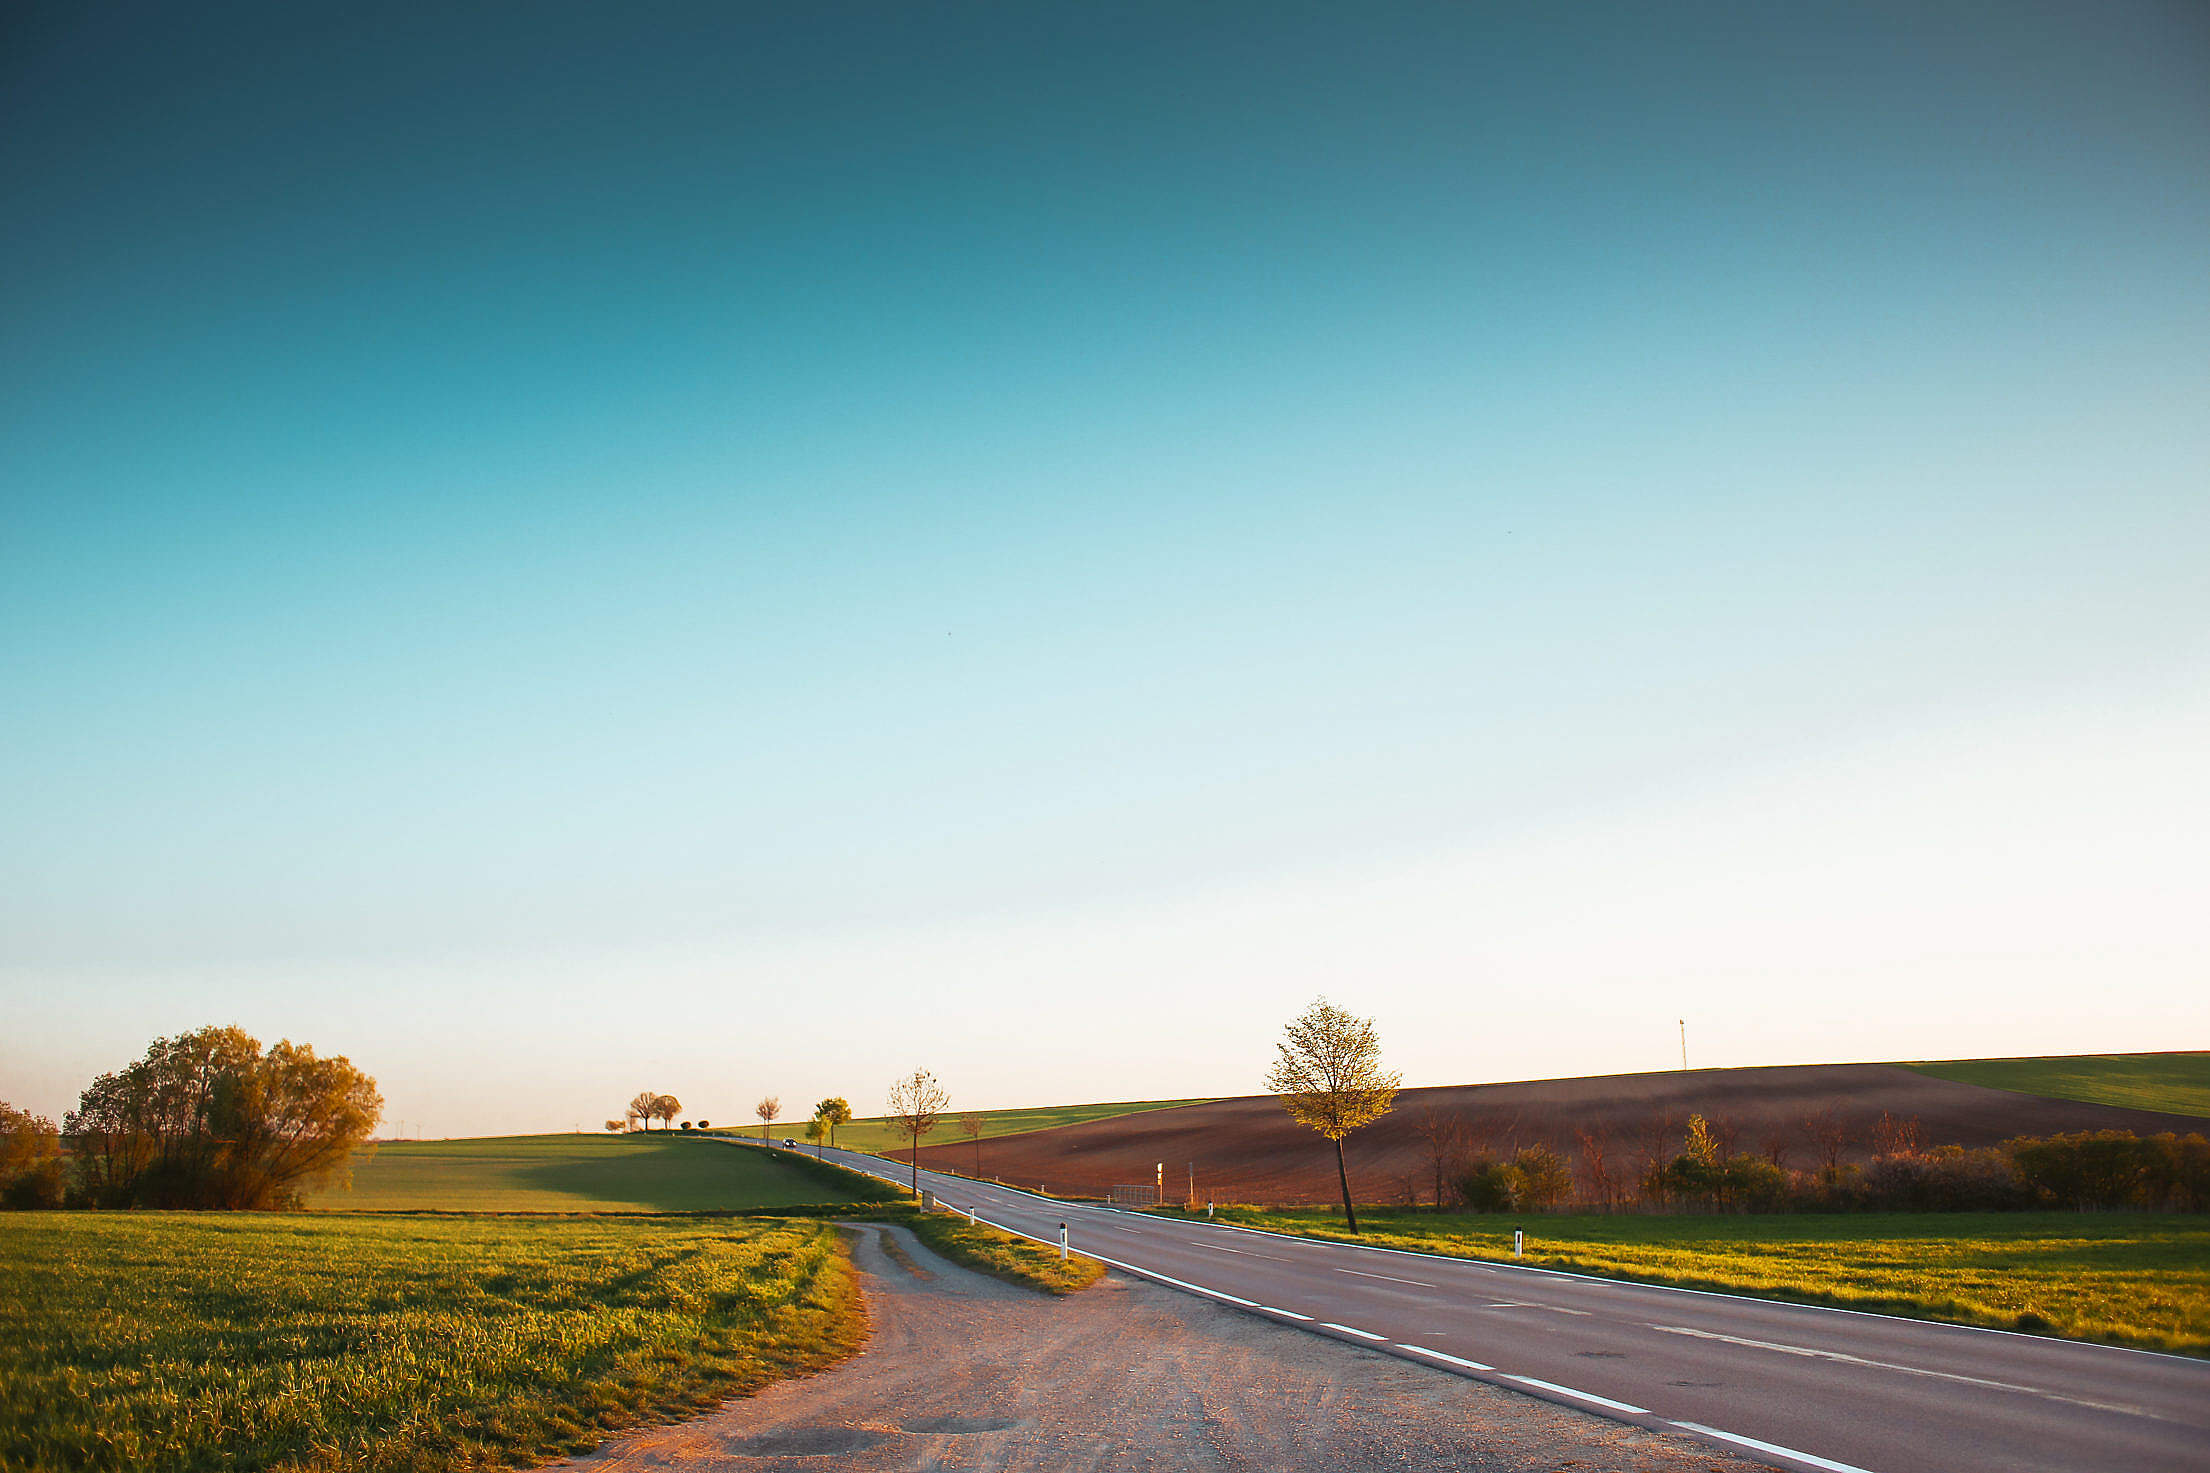 Long Road and Cloudless Sky Free Stock Photo